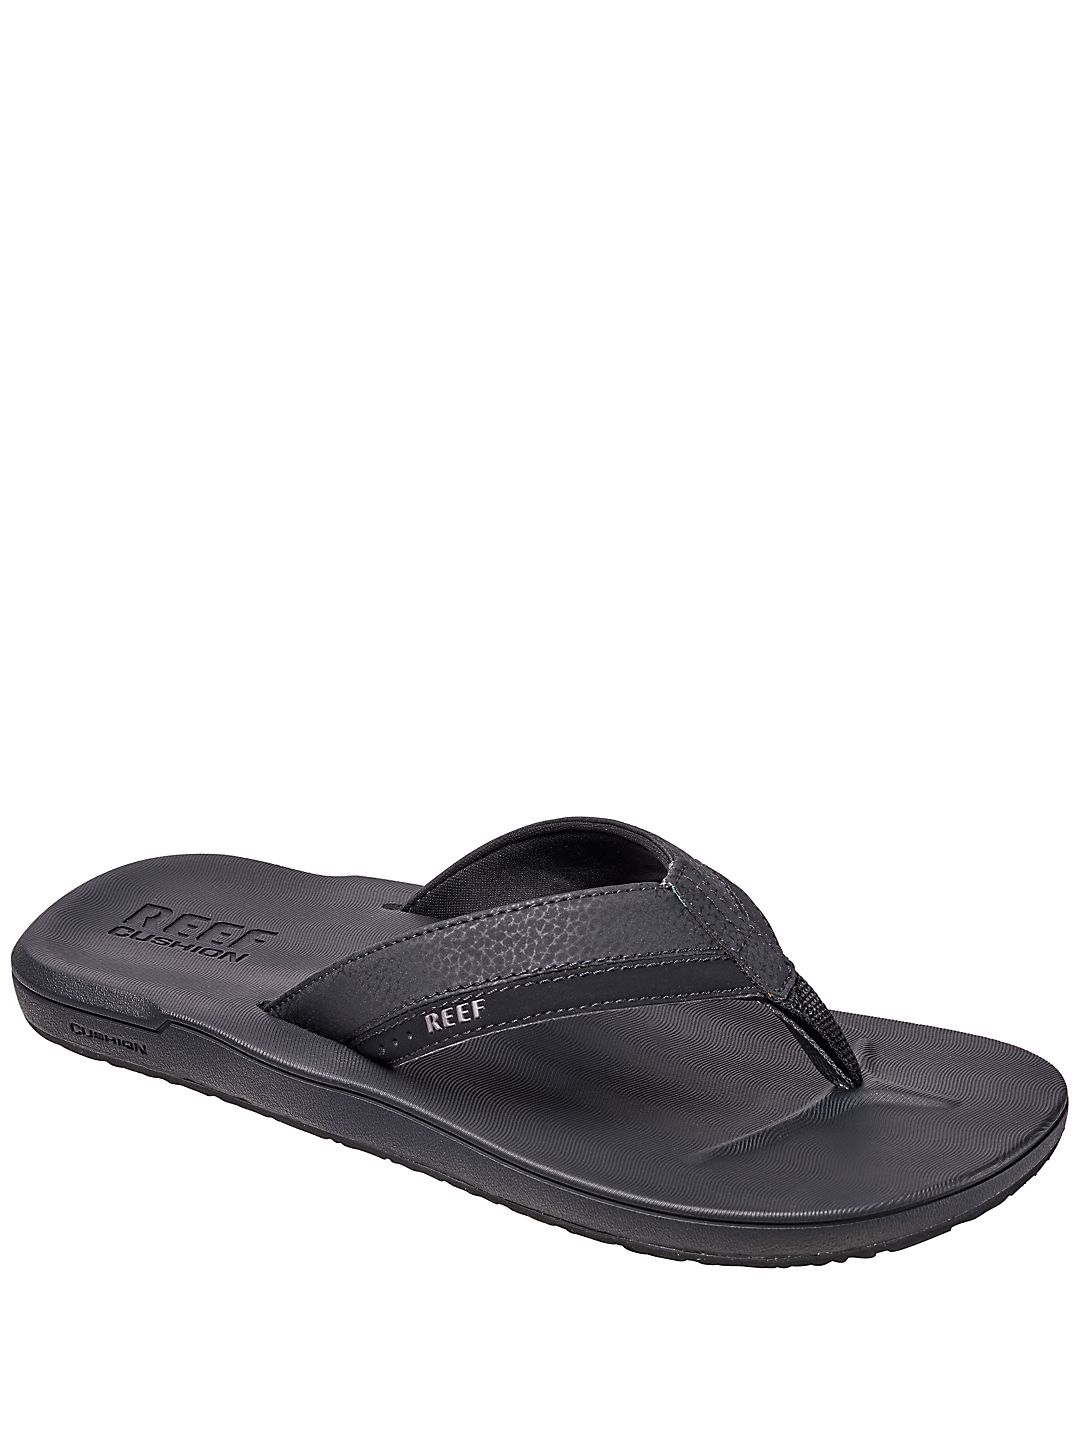 Contoured Cushion Slip-On Sandals